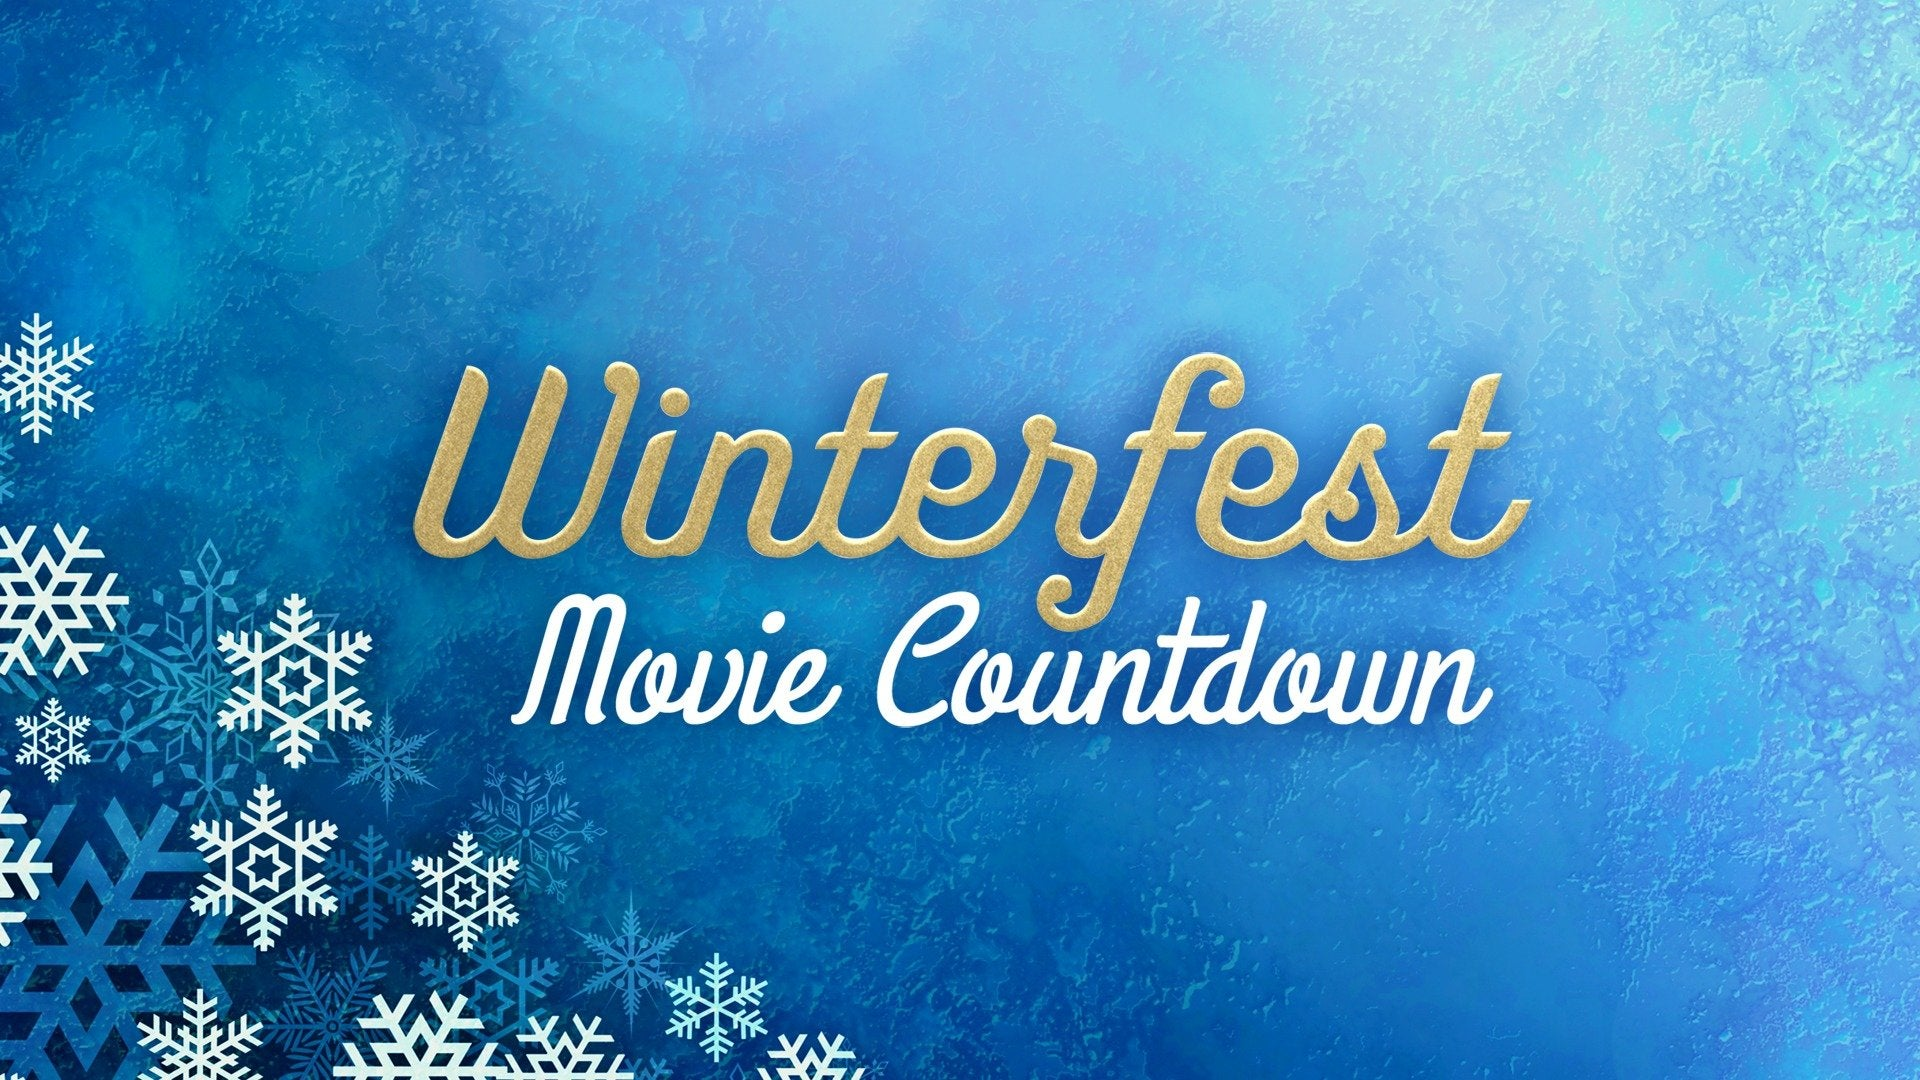 Winterfest Movie Countdown